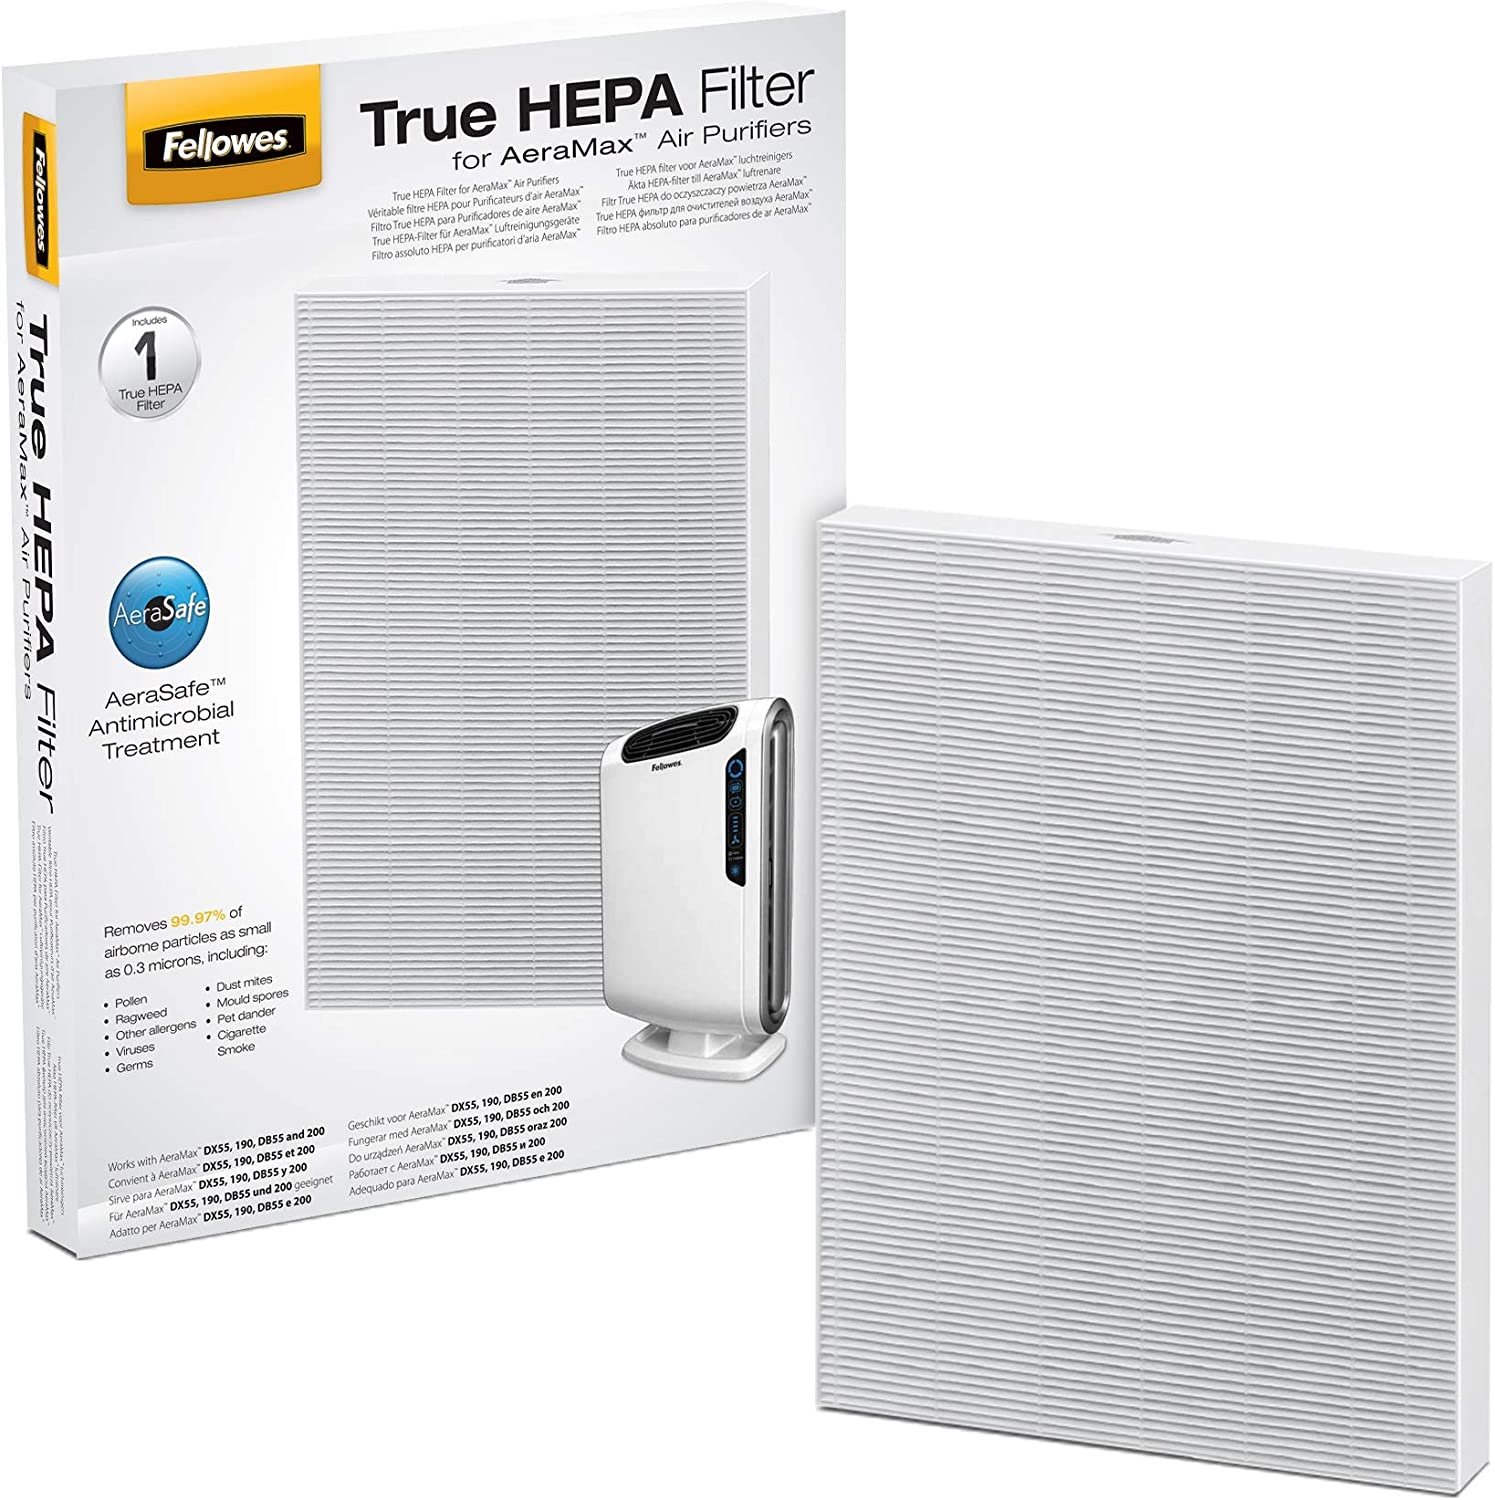 Fellowes True Hepa - Filtro para purificador de aire AeraMax DX-95: Amazon.es: Hogar